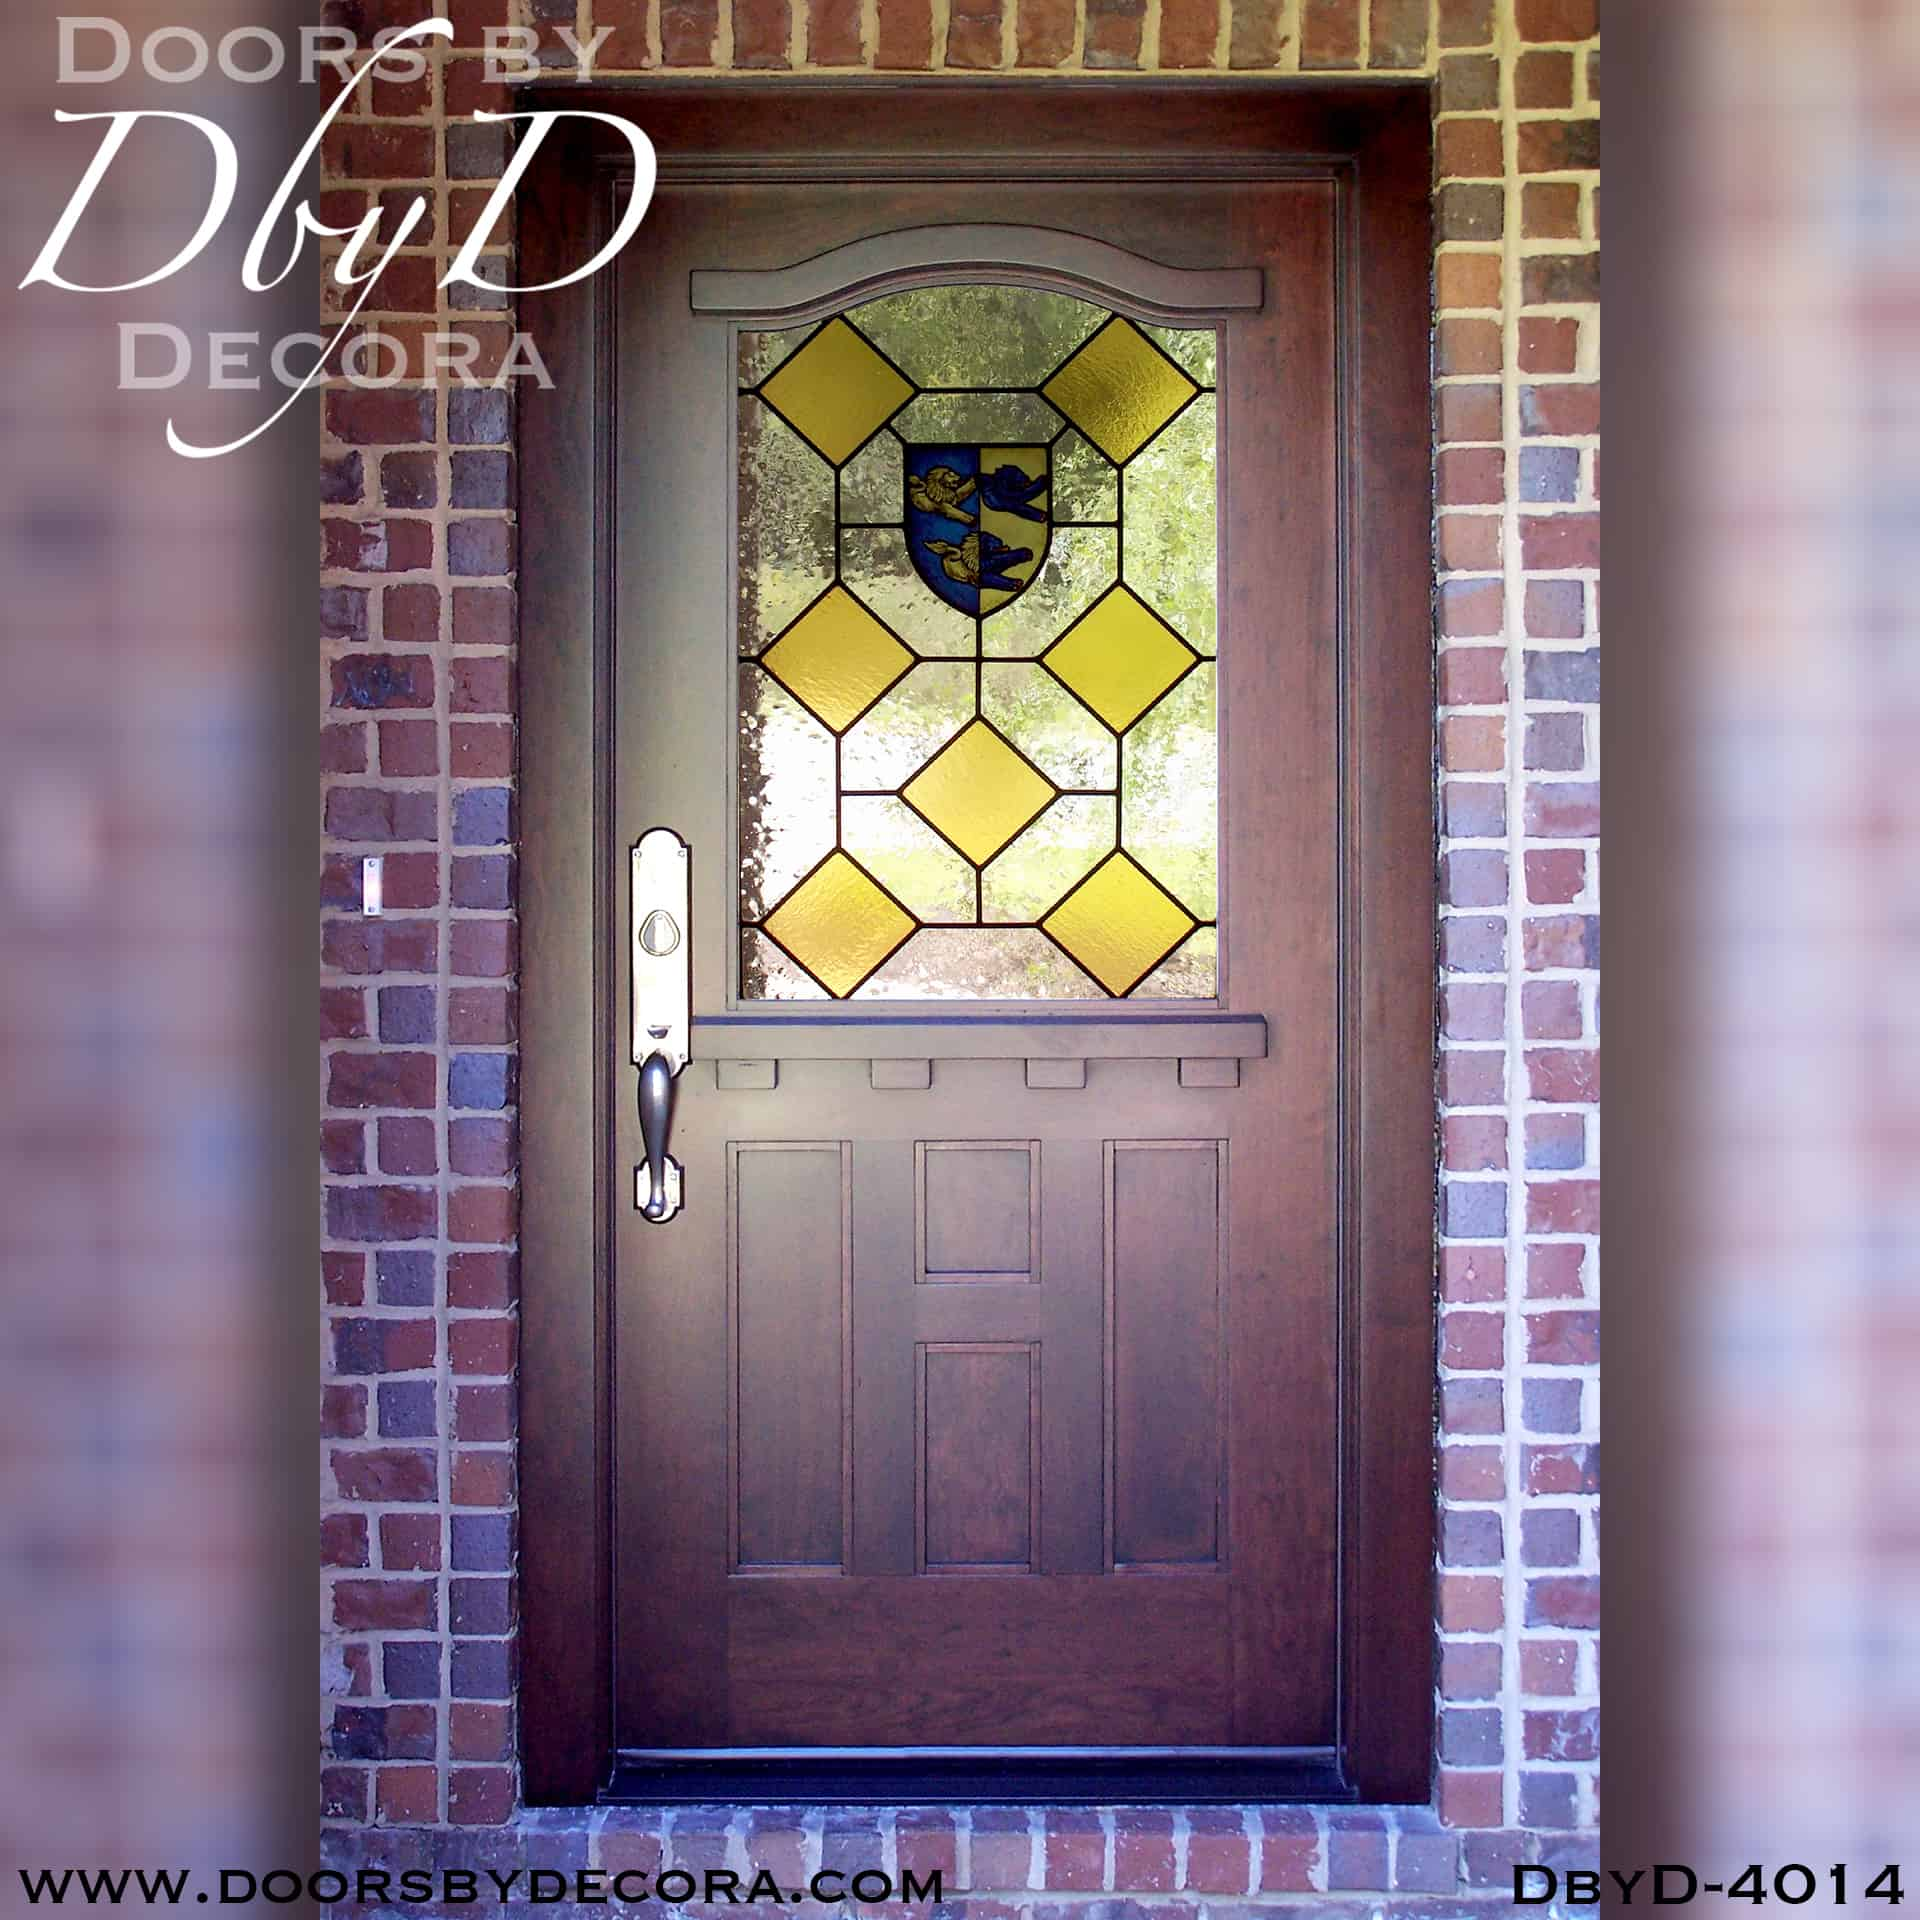 Custom Craftsman Door With Old World Glass Entry Doors By Decora